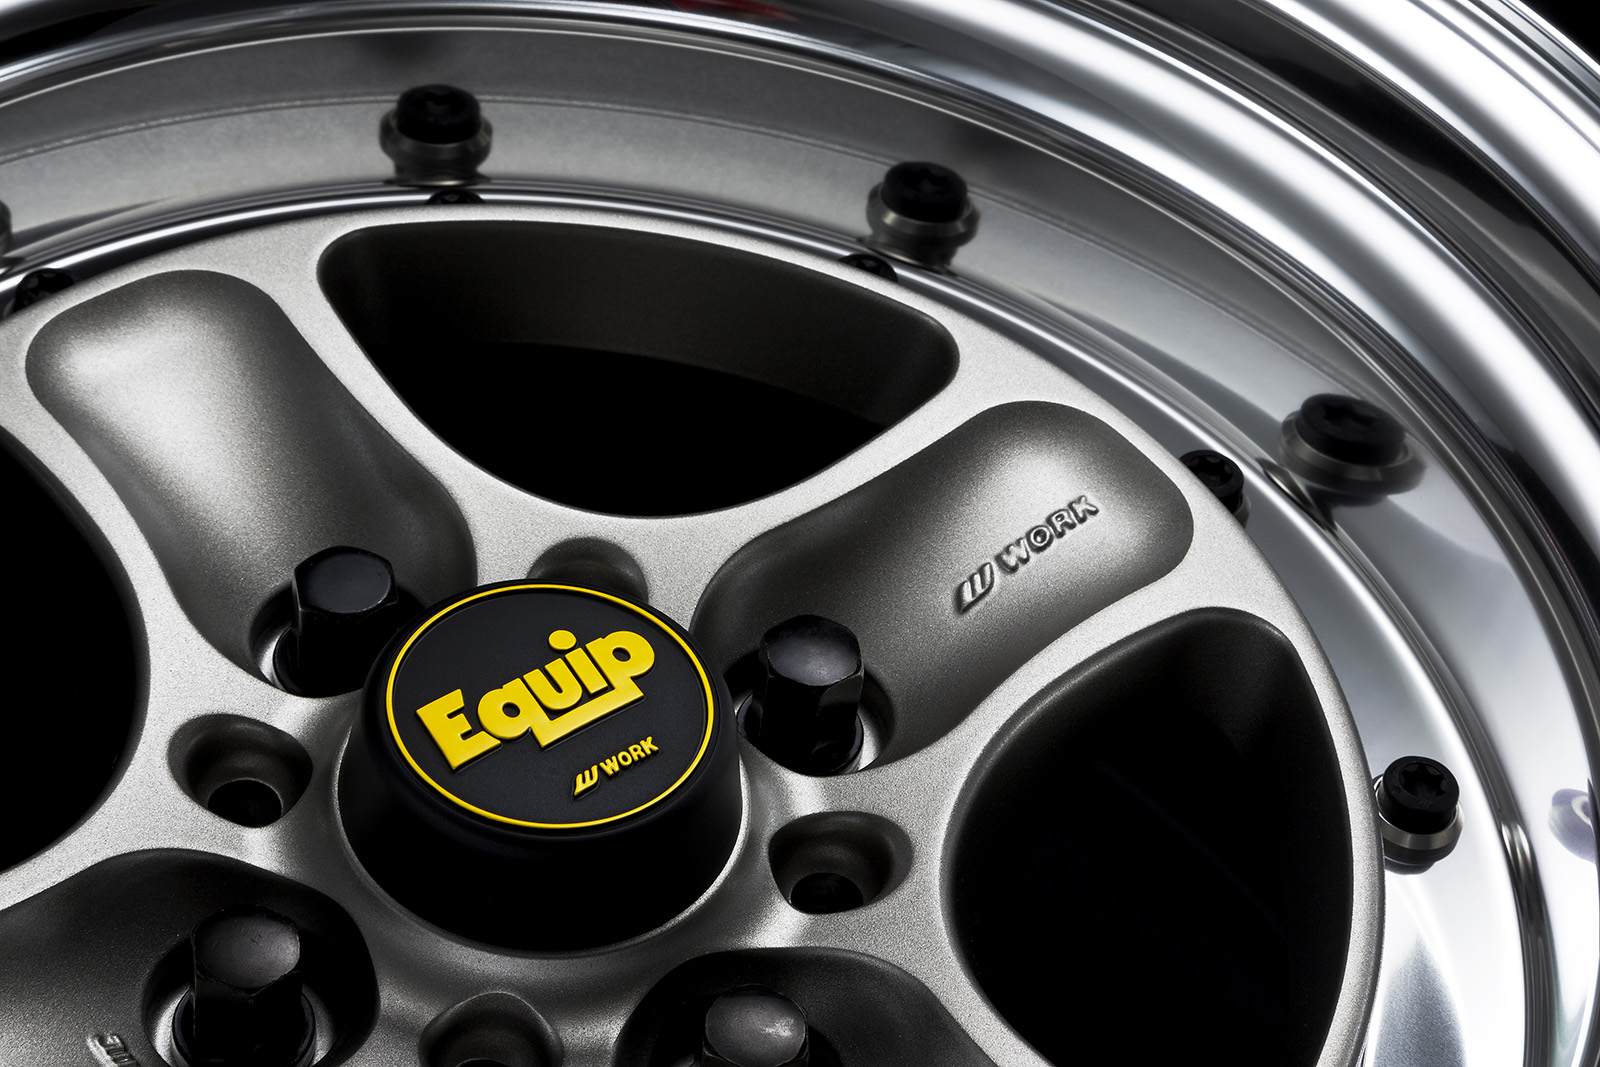 PASMAG WORK Equip 40 limited edition center cap 1